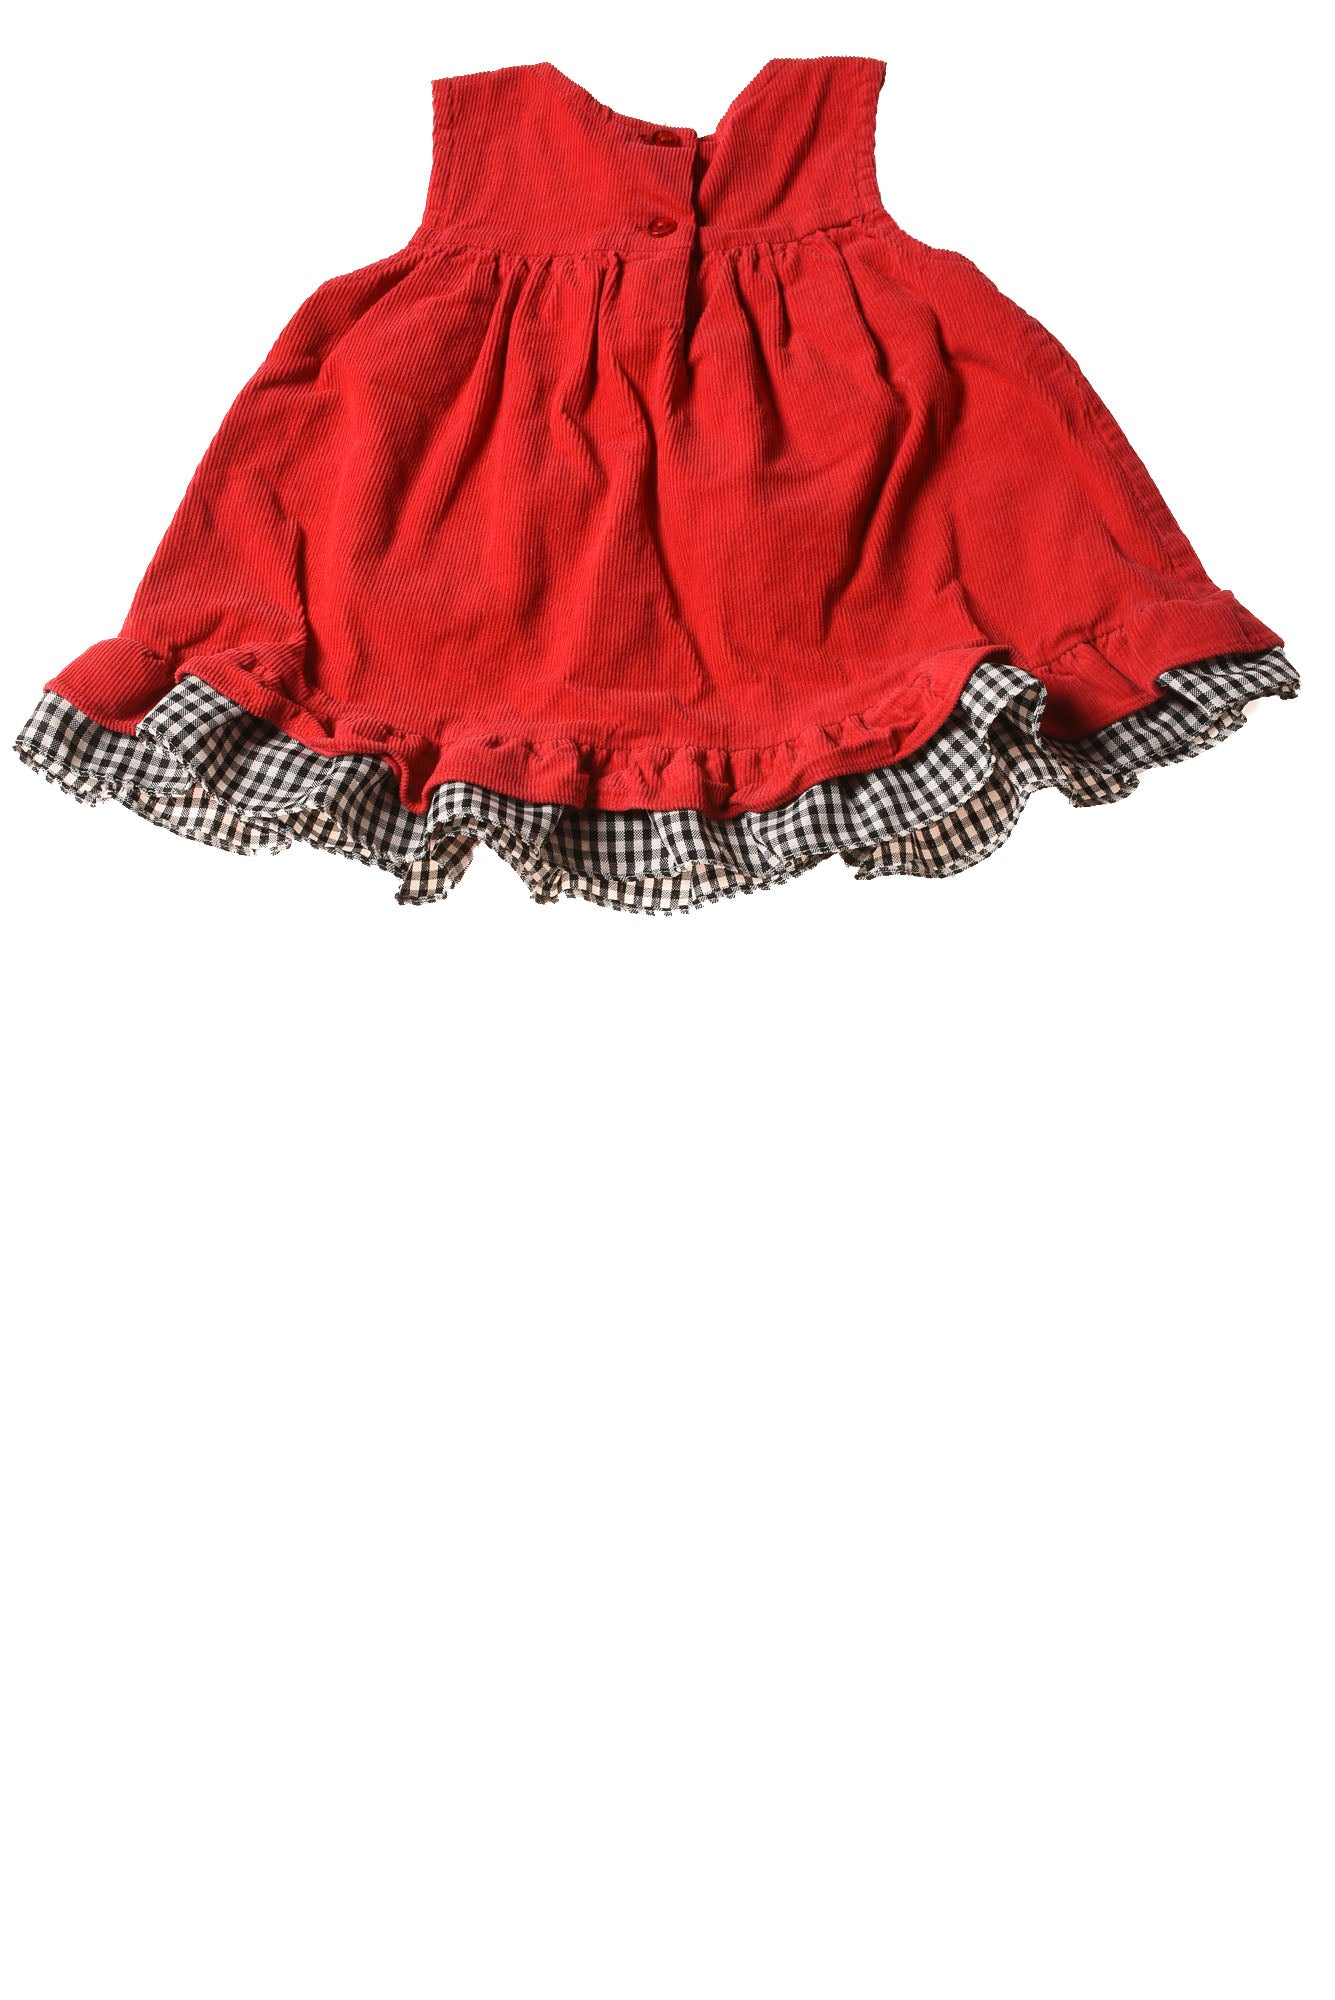 Used Rare Too Baby Girl S Dress 12 Months Red Print Village